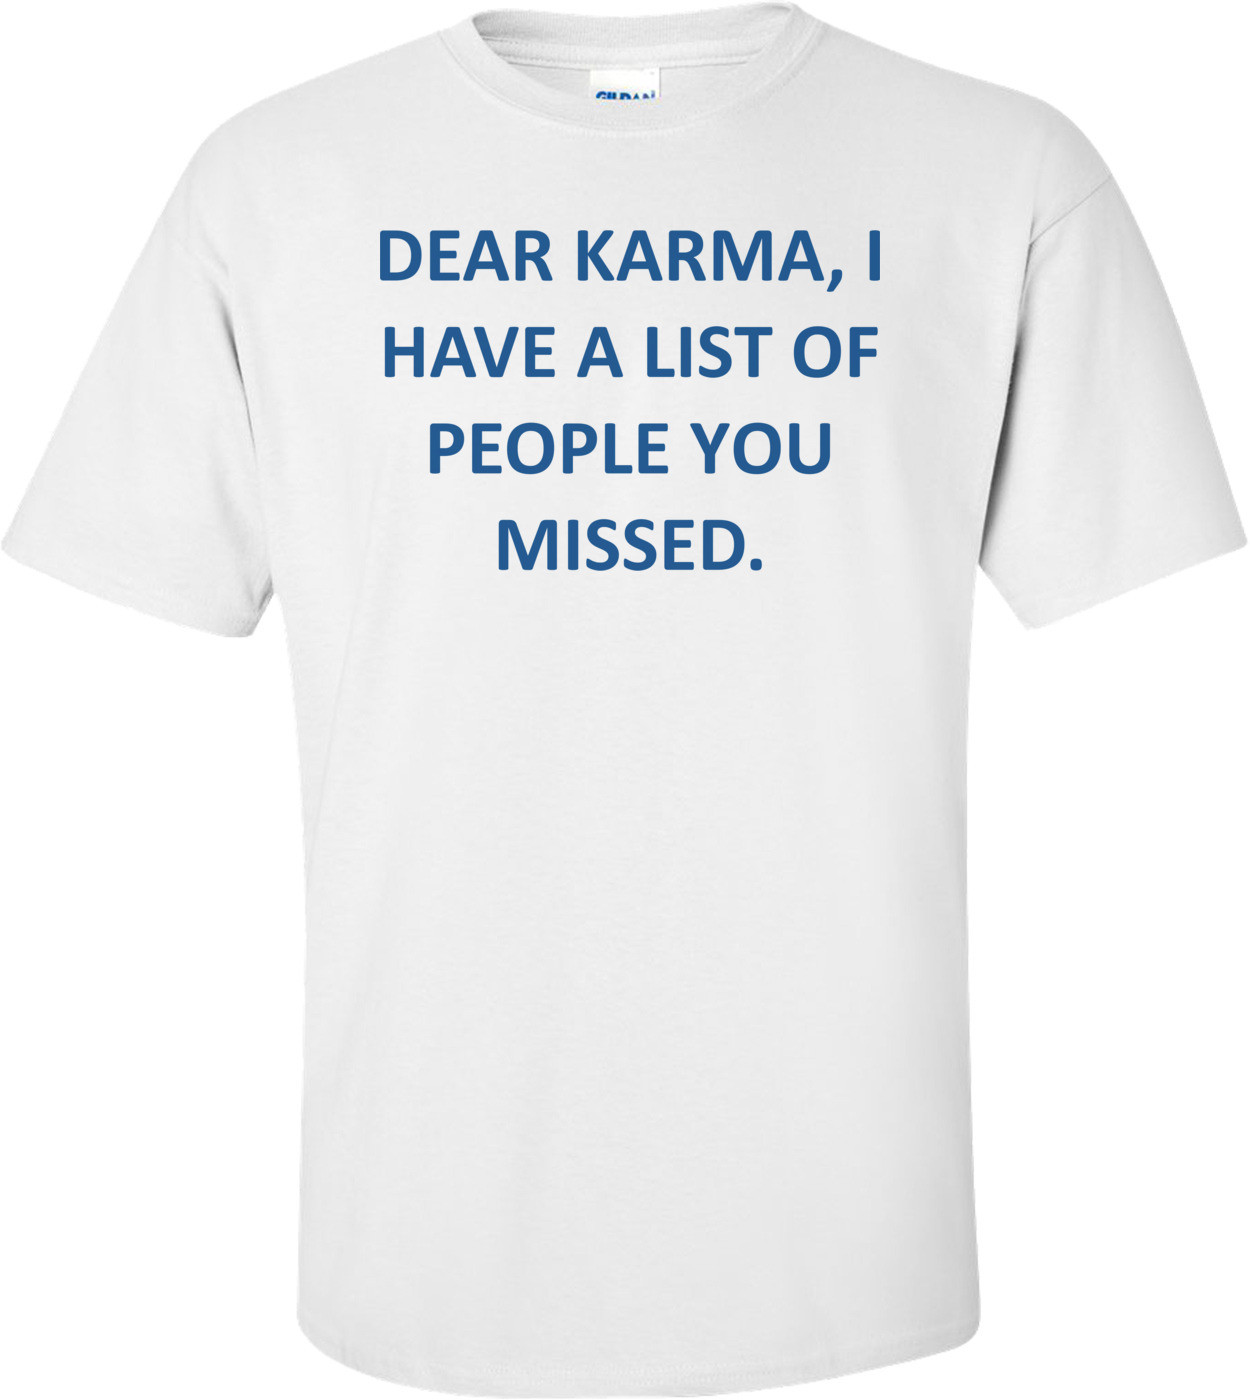 DEAR KARMA, I HAVE A LIST OF PEOPLE YOU MISSED. Shirt